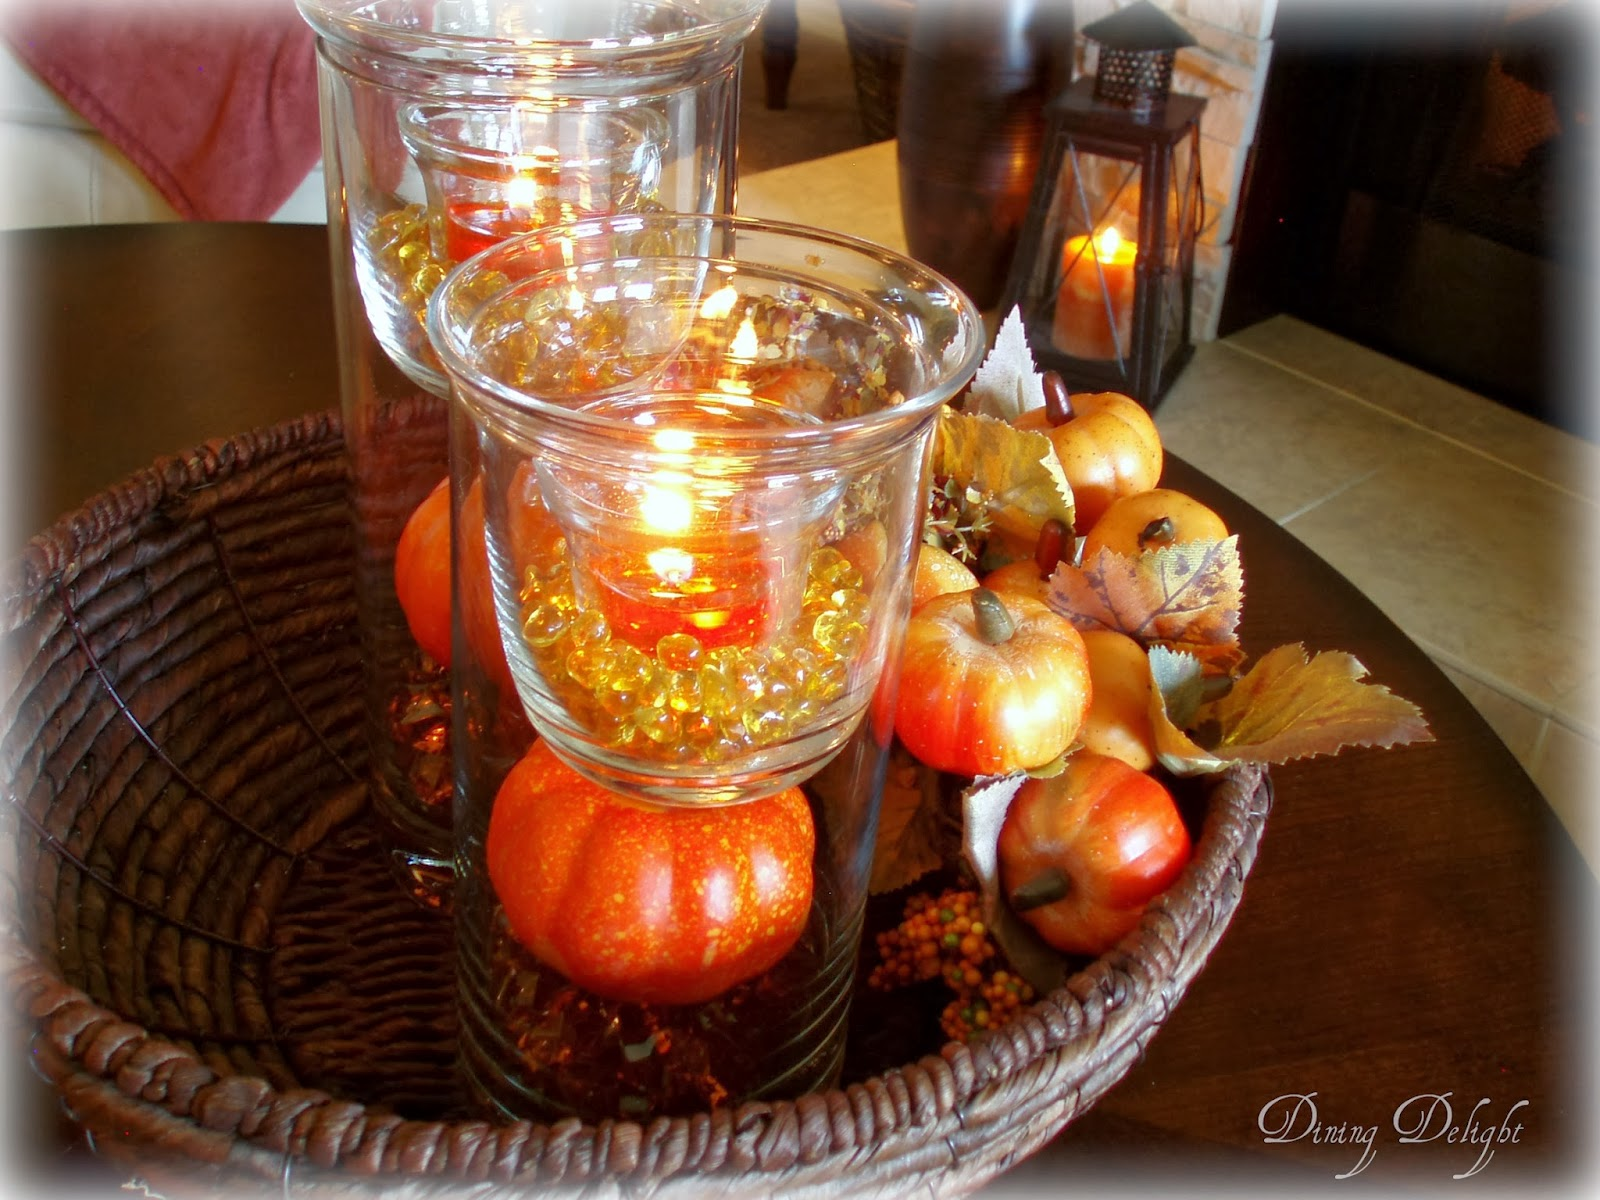 Dining delight fall coffee table 28 images dining delight fall coffee table centerpiece Coffee table centerpiece